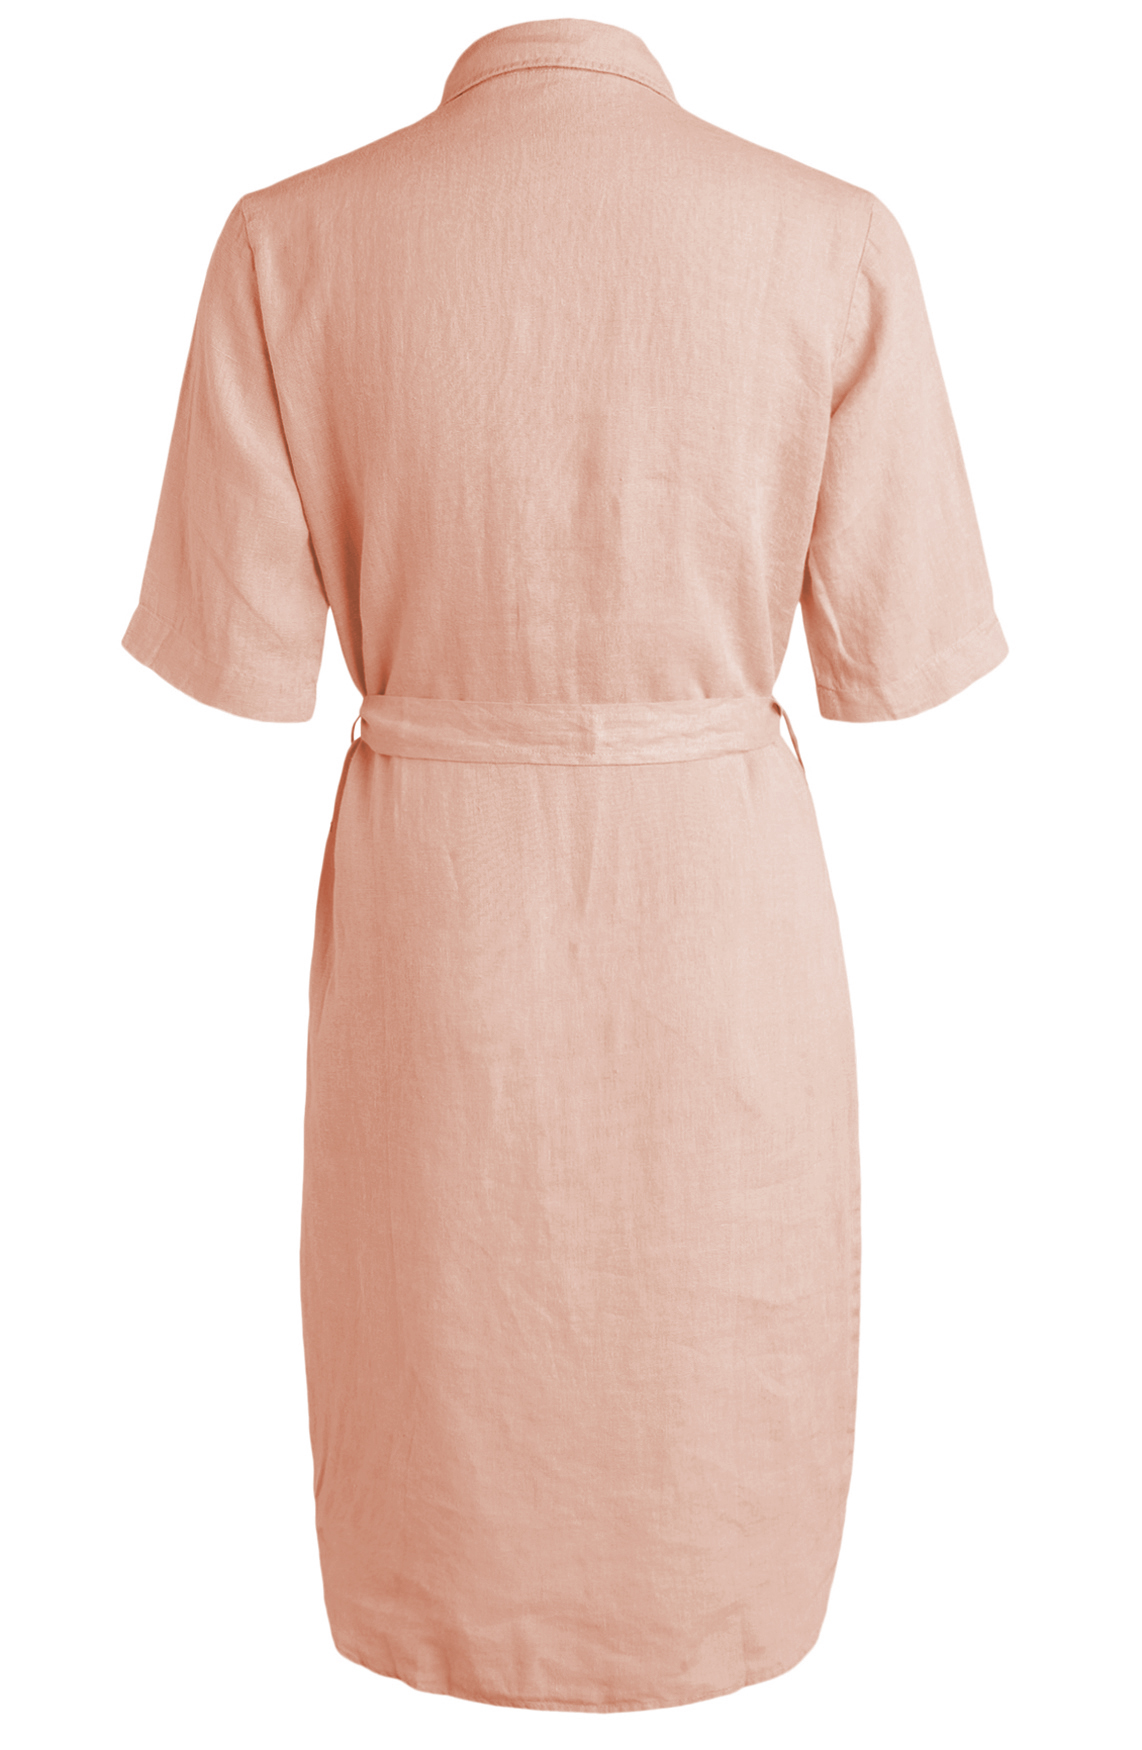 Moscow Dames Dress with belt roze